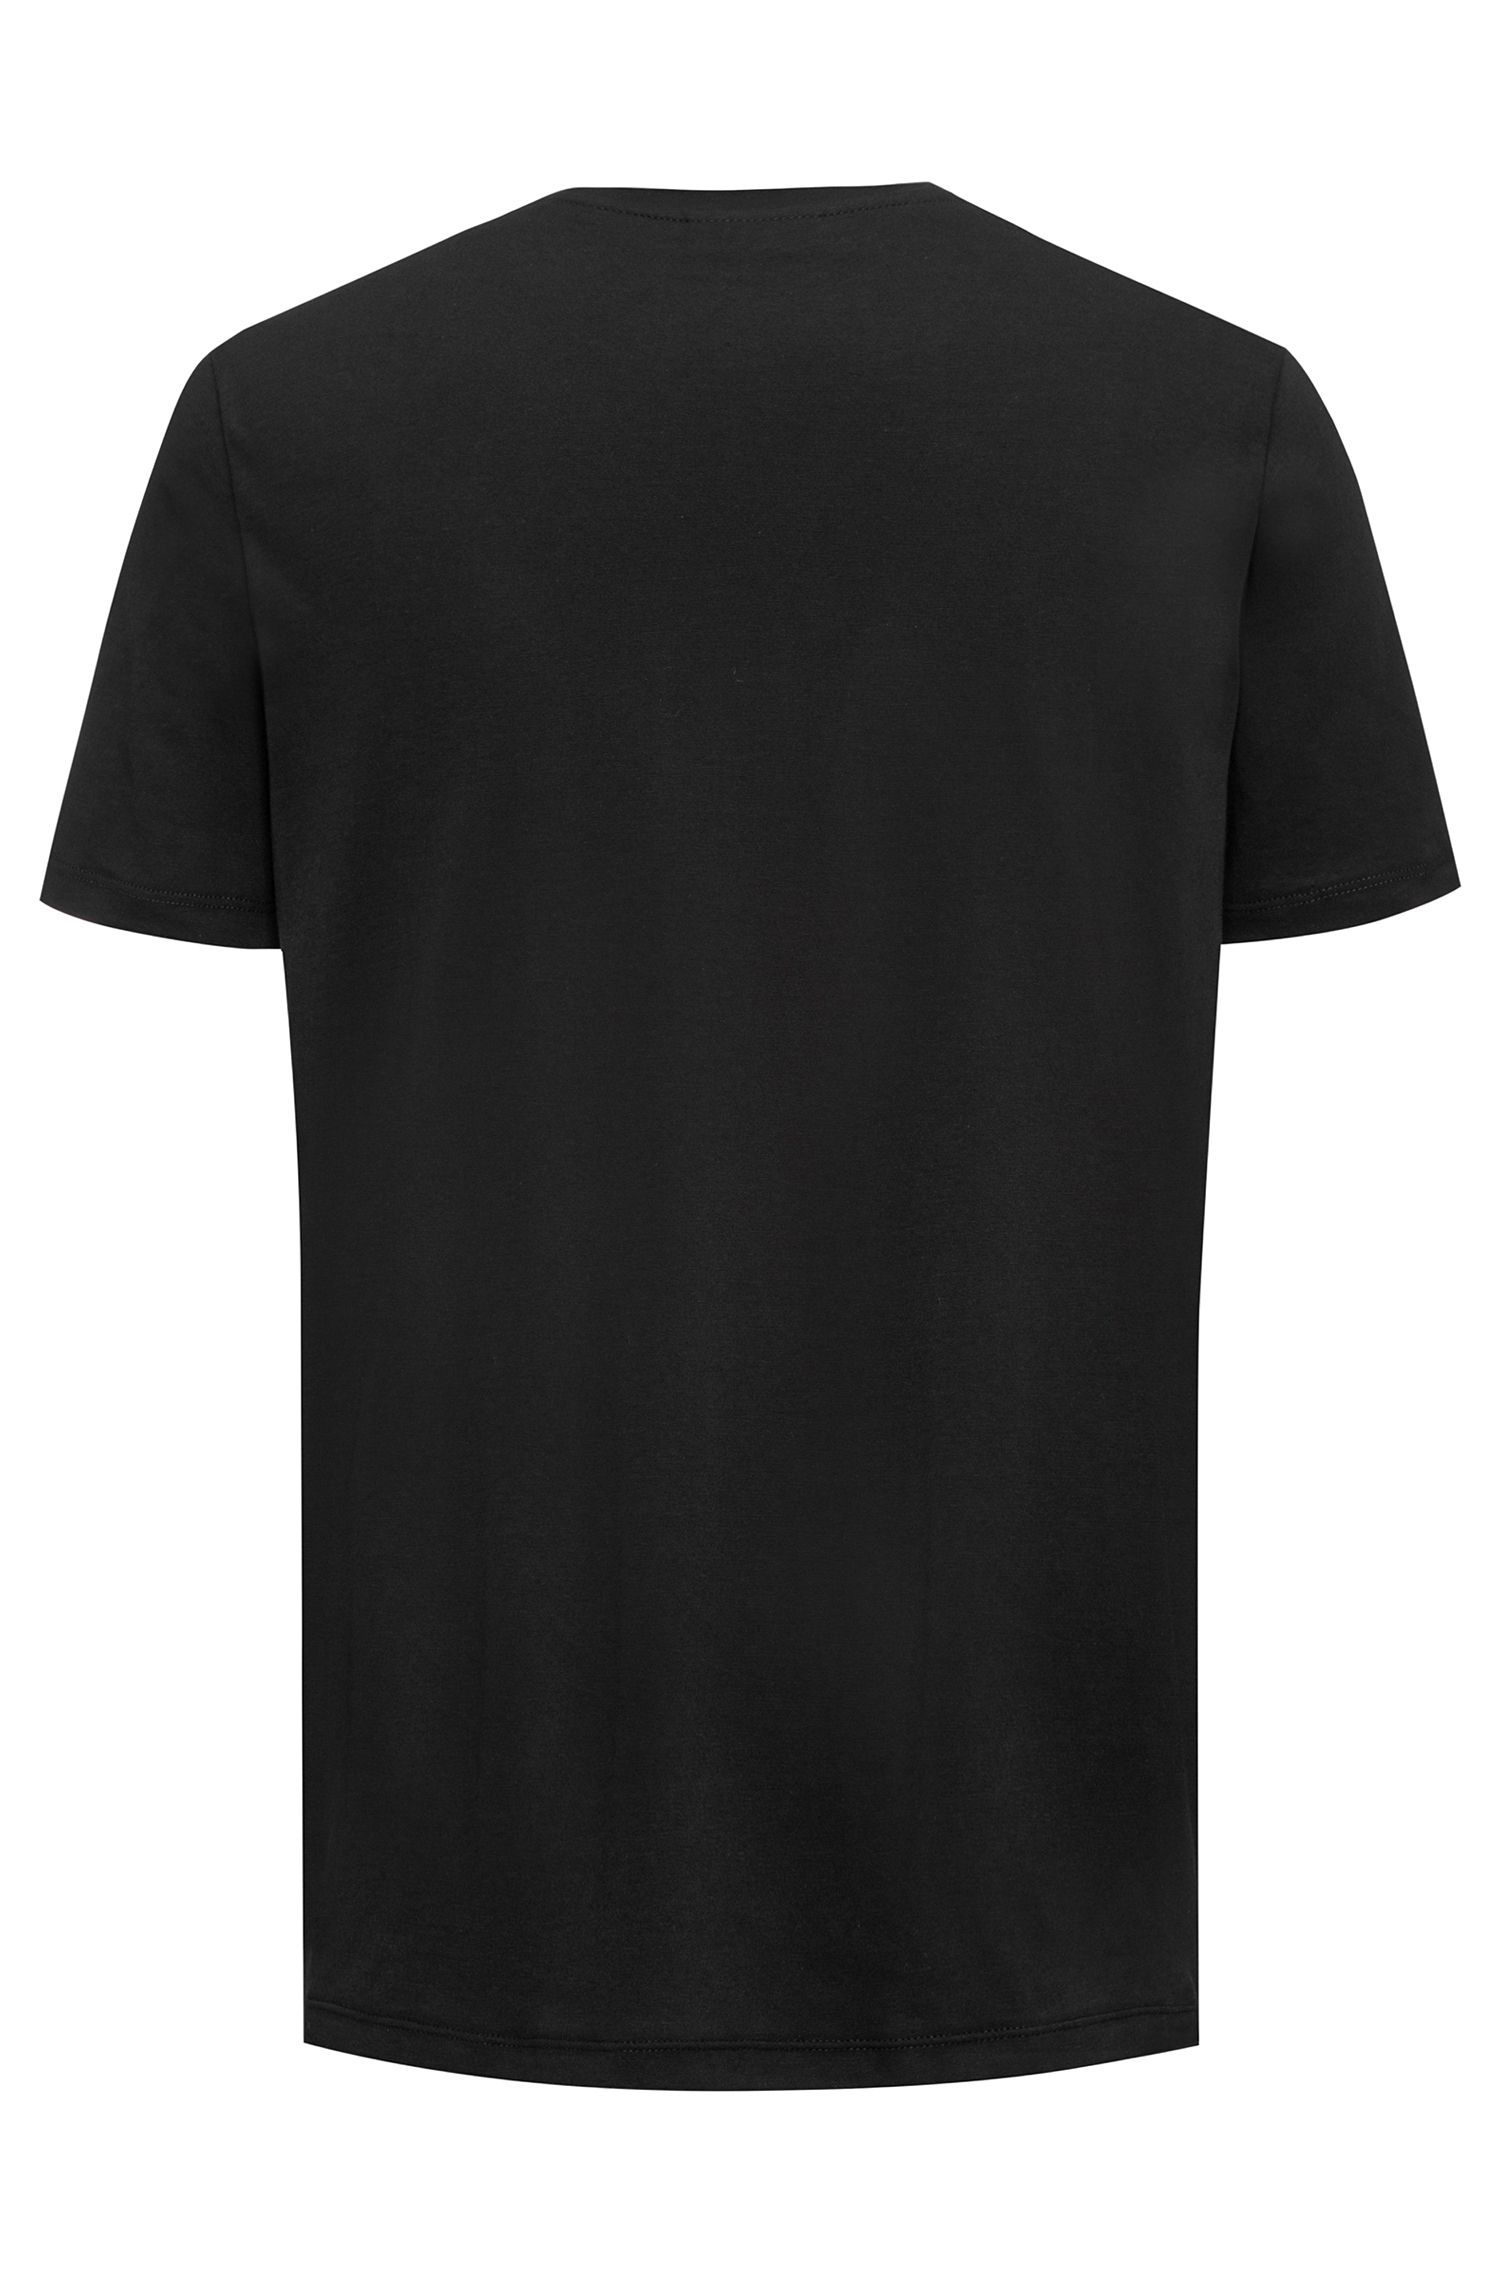 T-shirt con logo relaxed fit in jersey di cotone, Nero